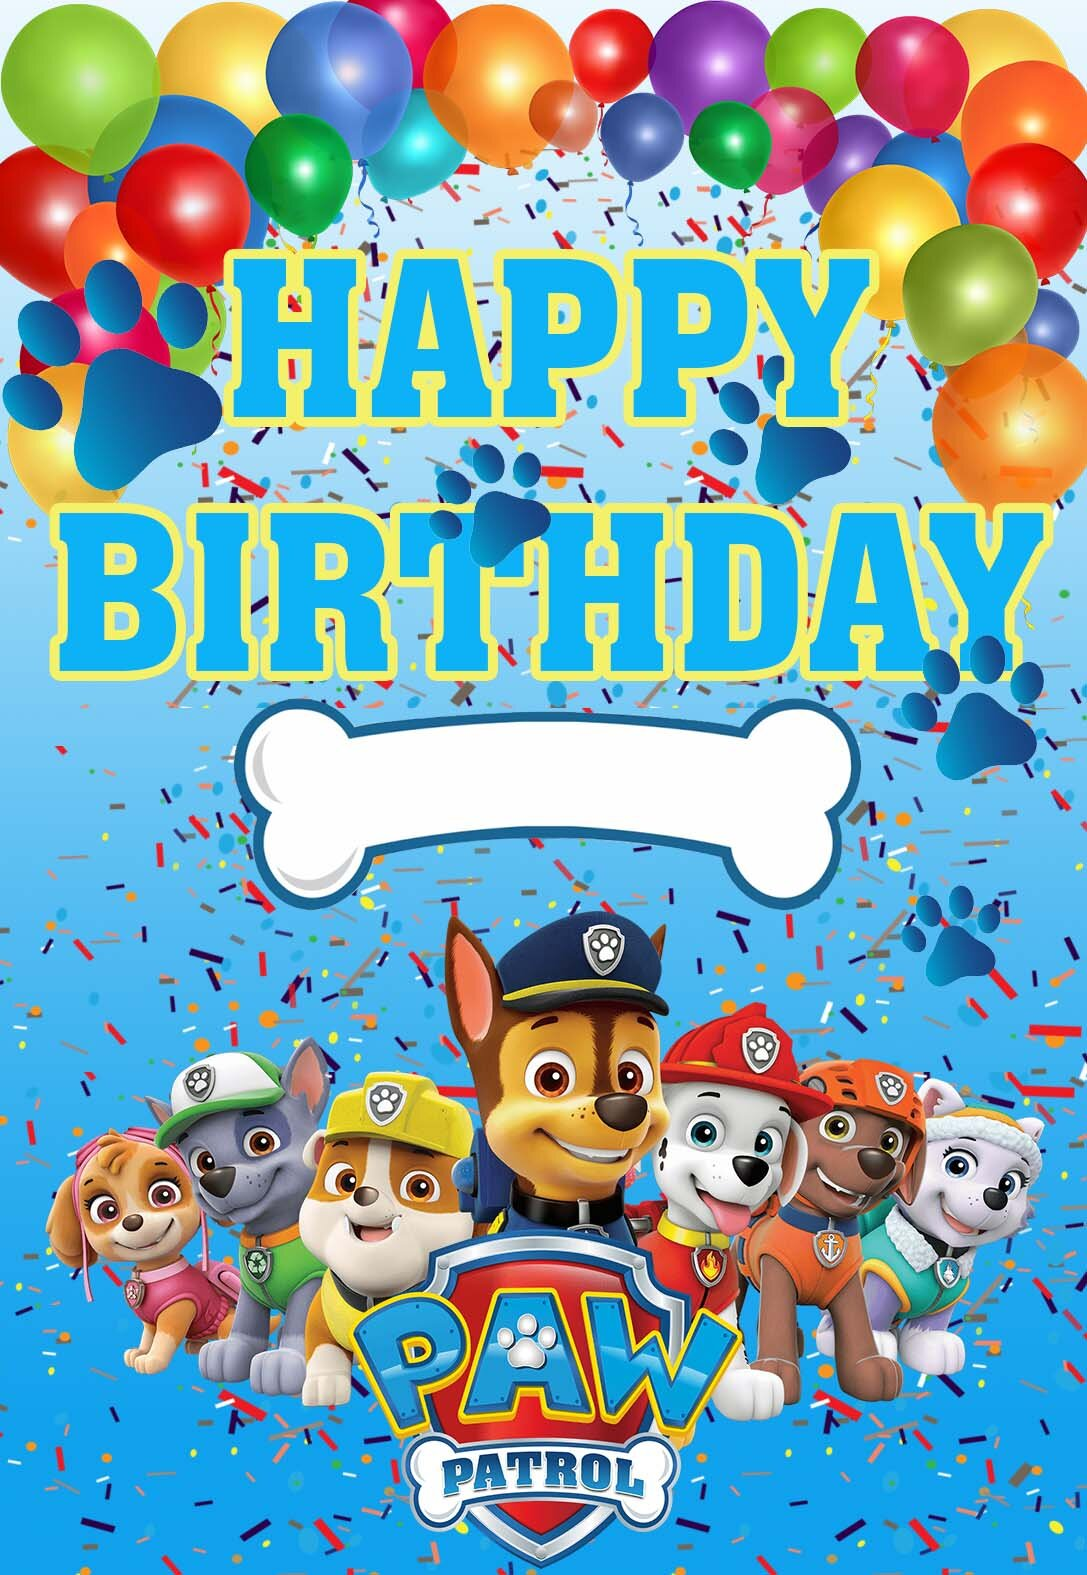 It is a graphic of Paw Patrol Printable in mask